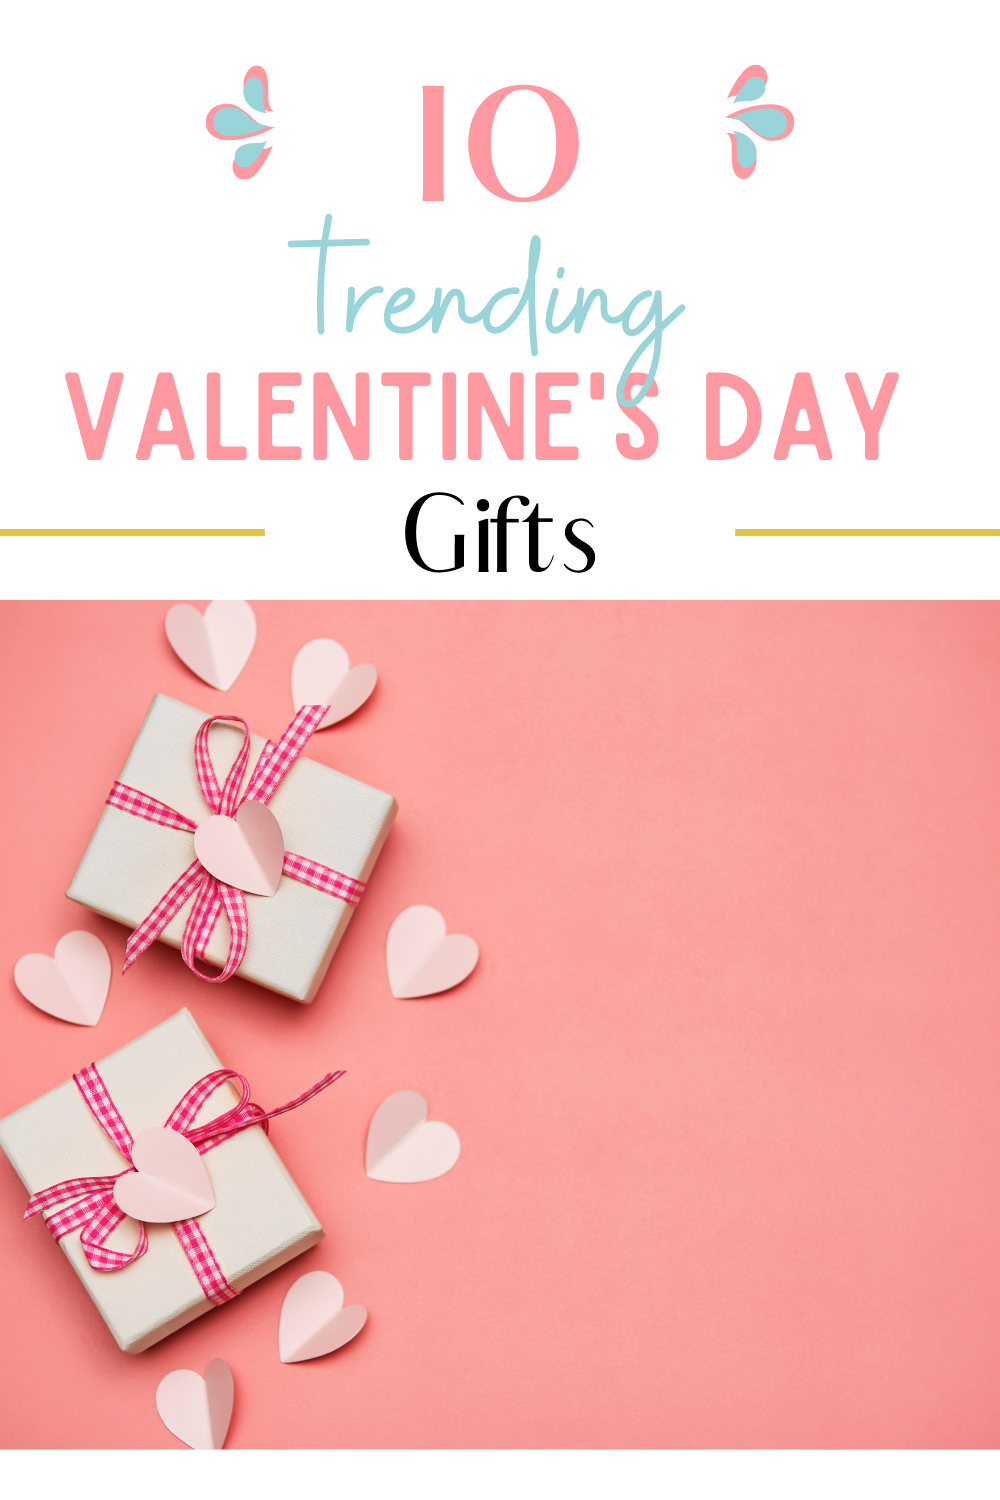 Trending Valentine's Day Gifts